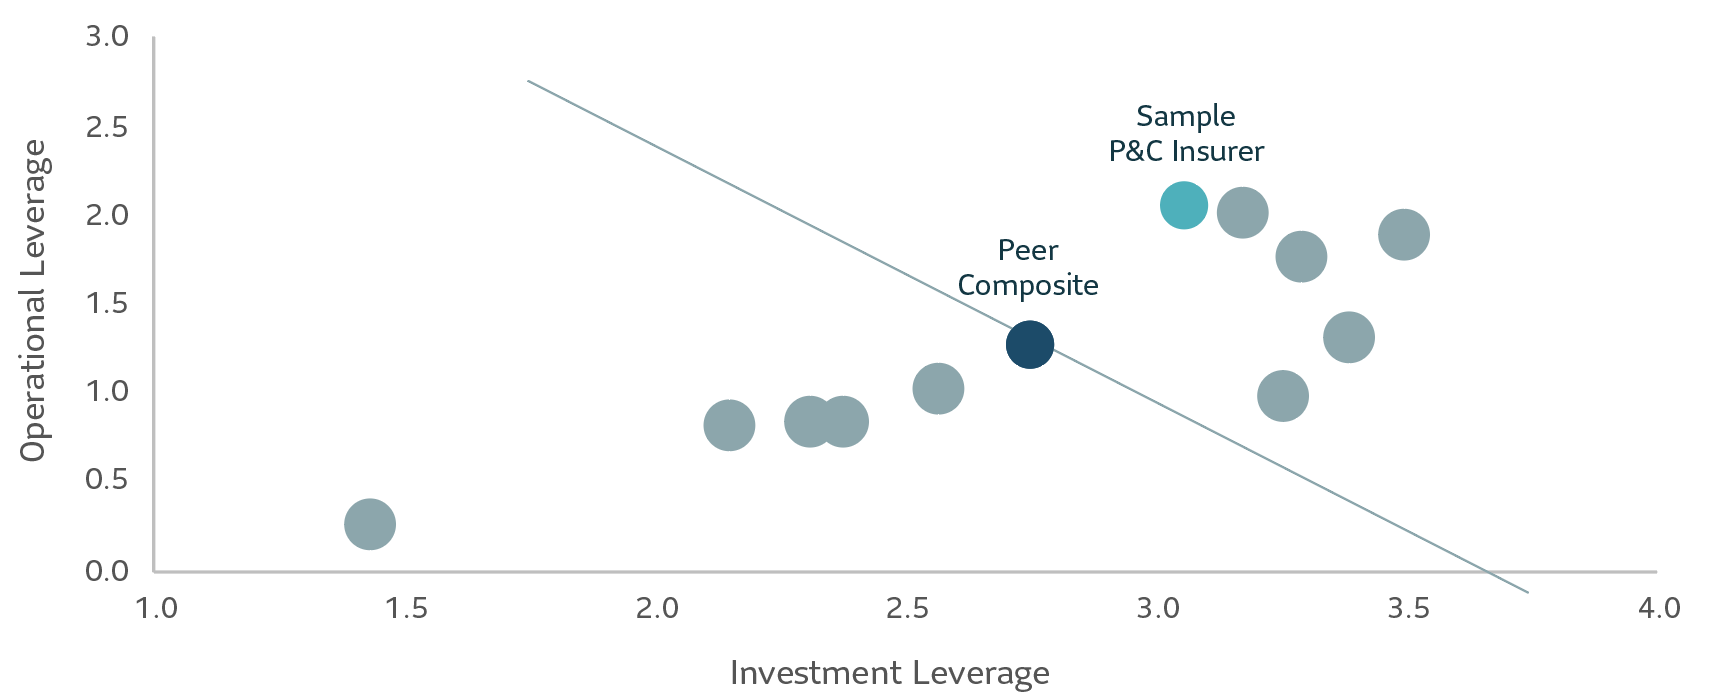 Scatter plot of operational leverage and investment leverage for sample P&C insurers in Canada where P&C insurers have varying levels of operational and investment leverage relative to the peer composite.